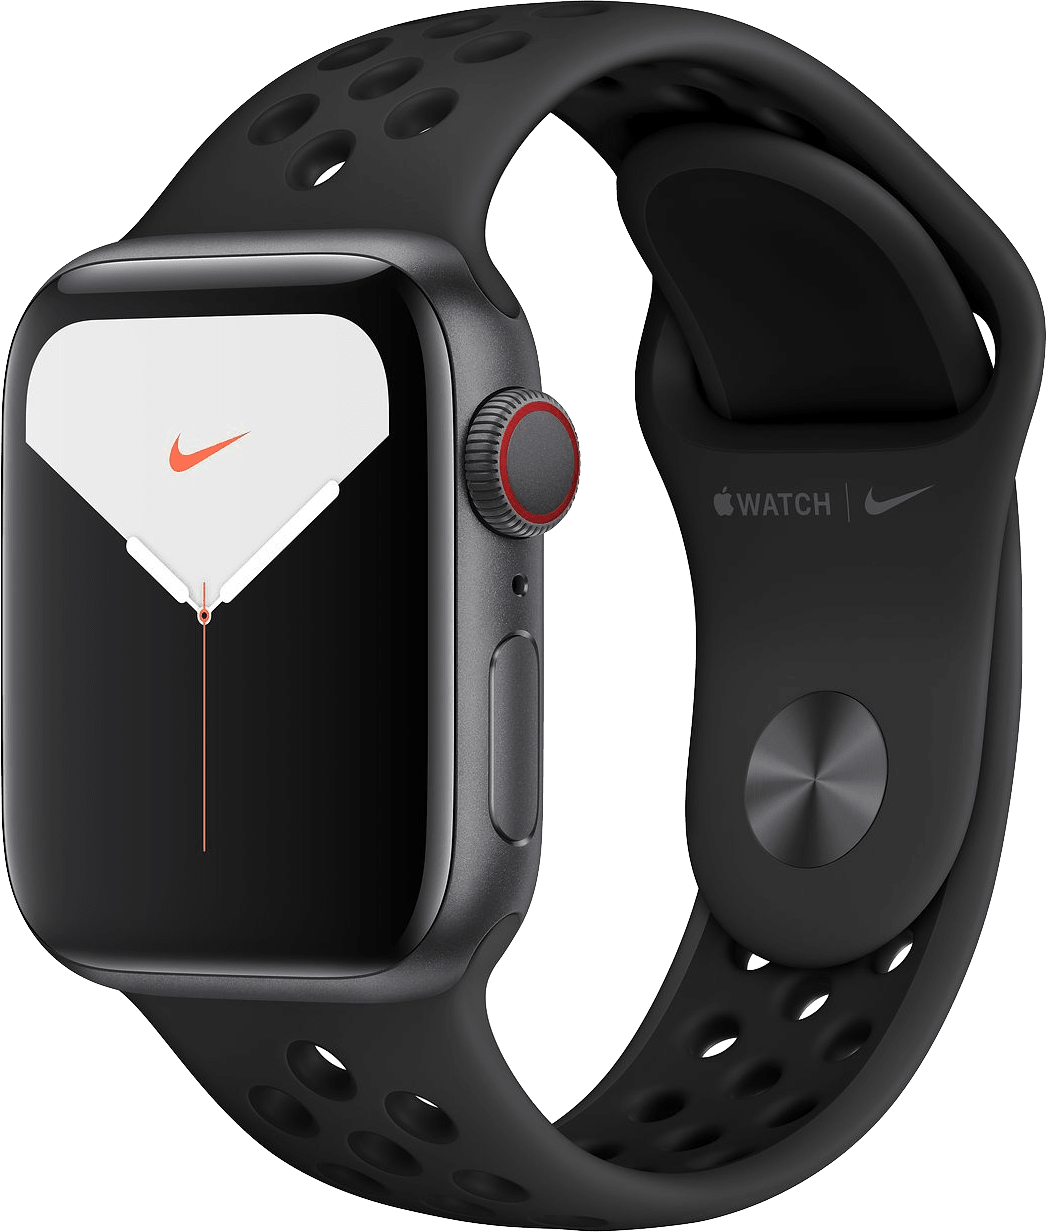 Anthracite / Schwarz Apple Watch Nike Series 5 GPS + Cellular, 40mm.2